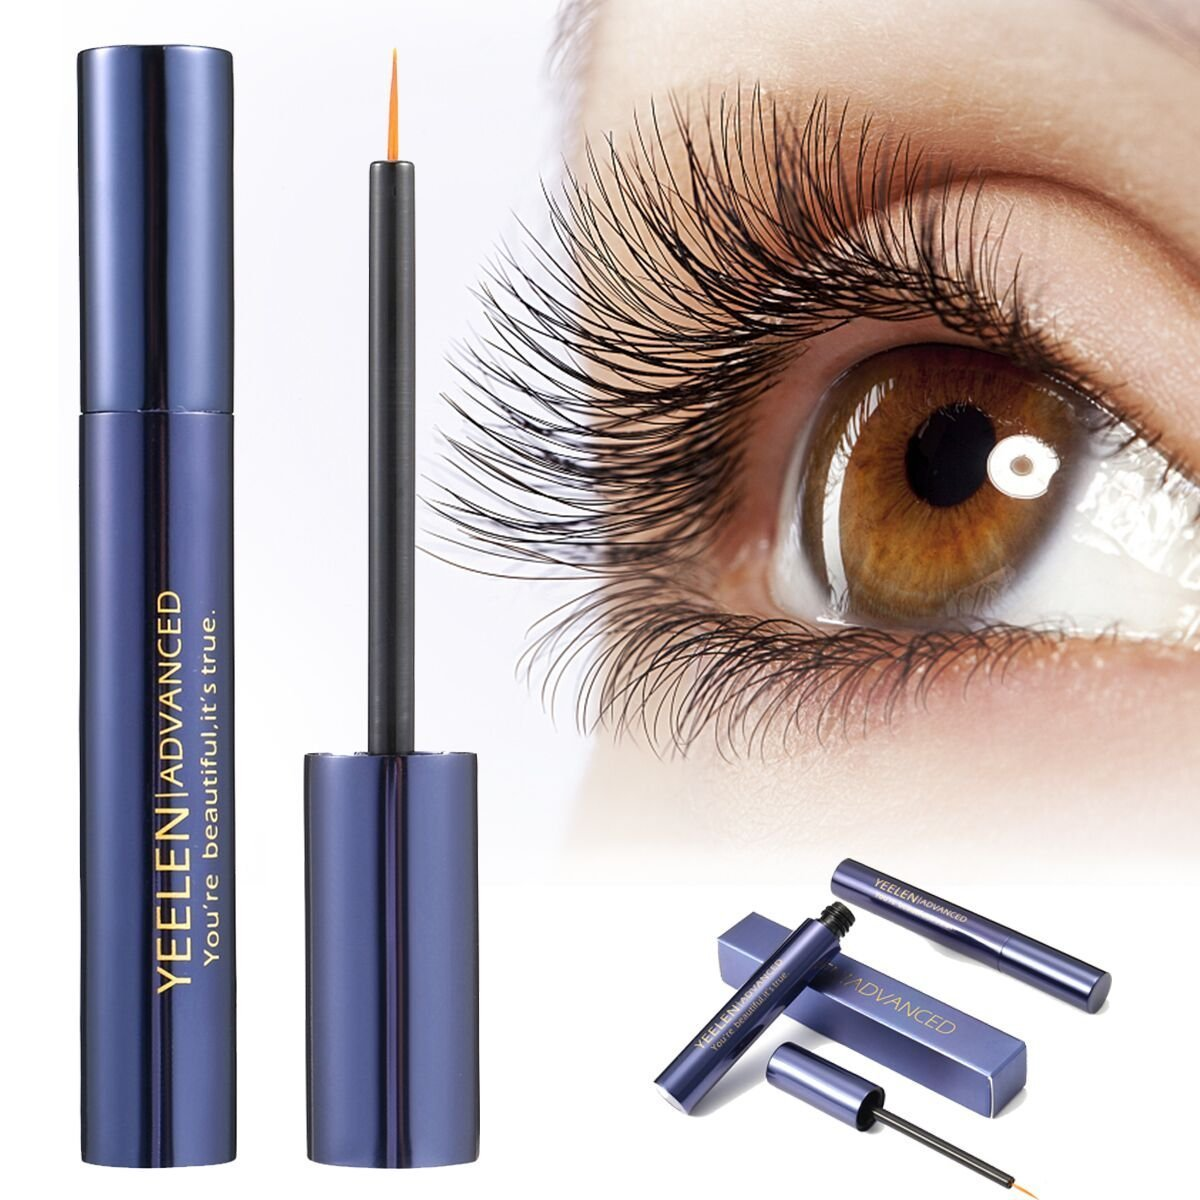 Yeelen Eyelash Eyebrow Growth Serum Grows Longer, Fuller, Thicker Lashes & Brows in 45 days! Enhancer Eyelash Conditioner Non-prescription Eyelash Serum 5ml